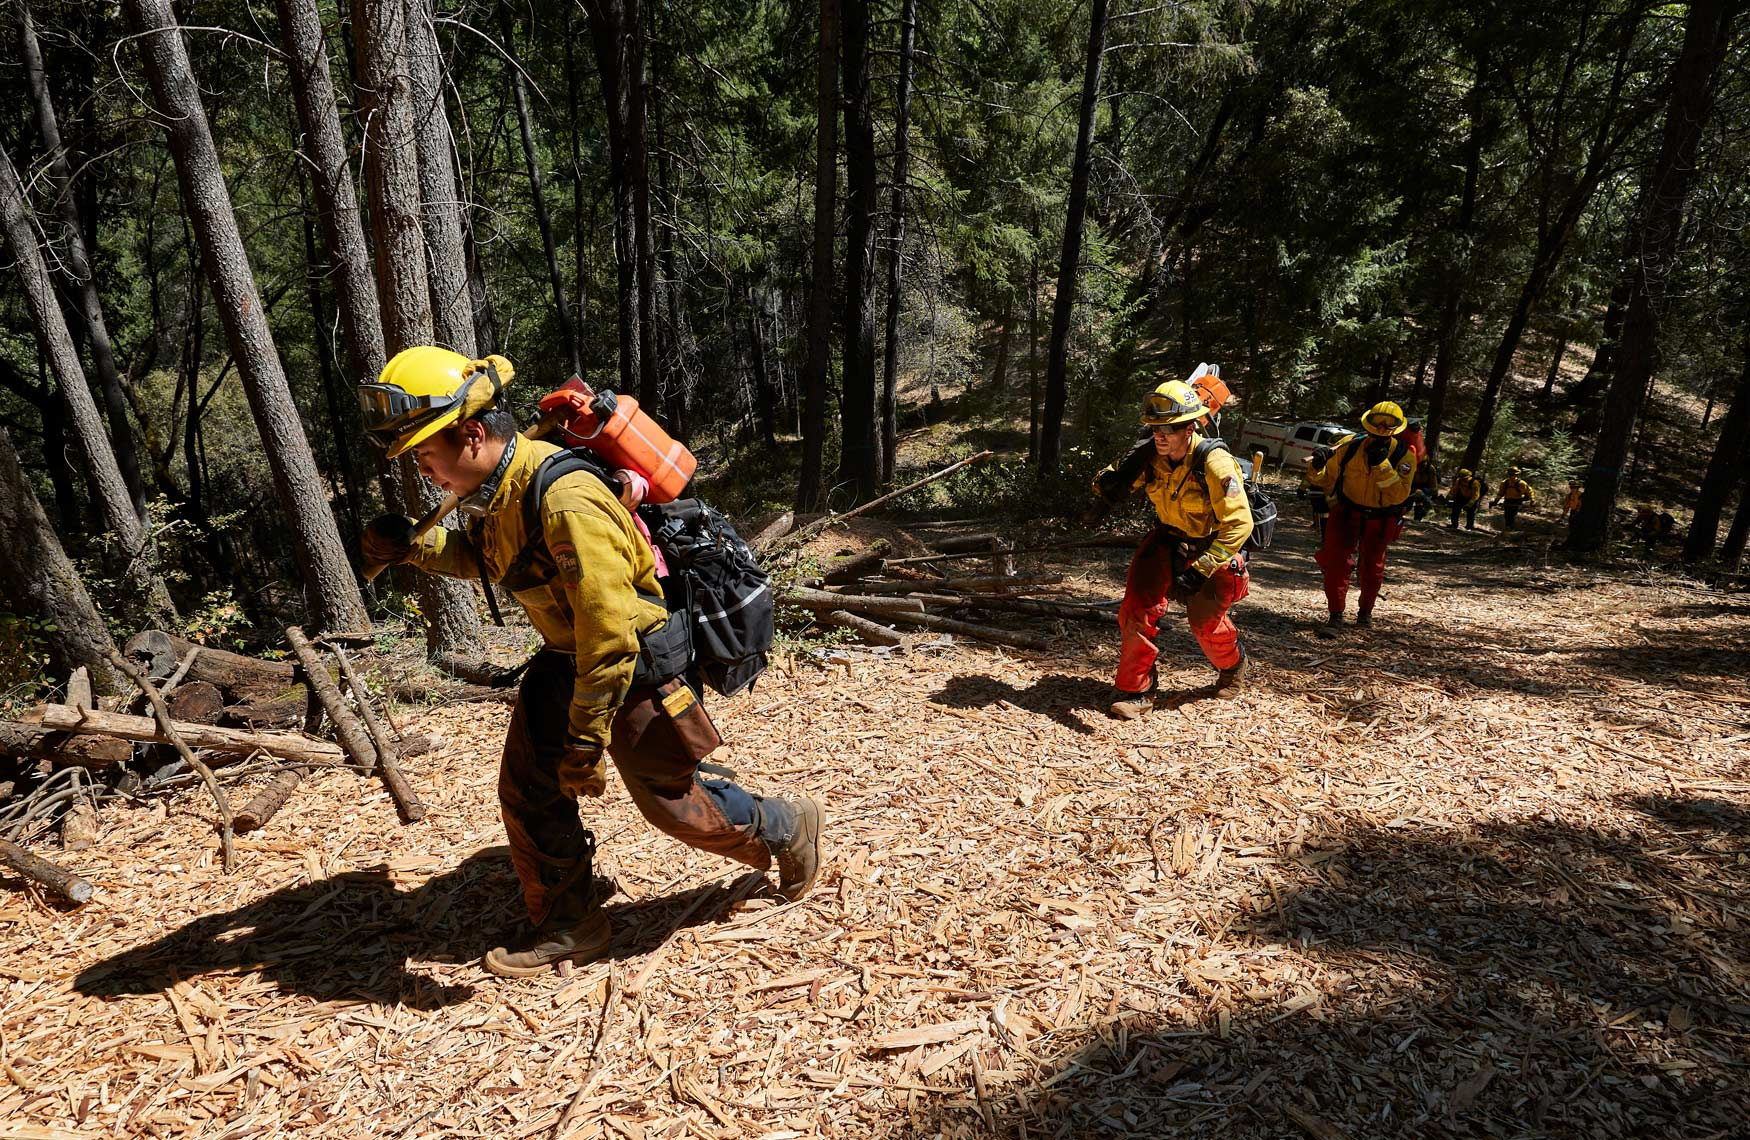 Firefighters HIke Through the Forest